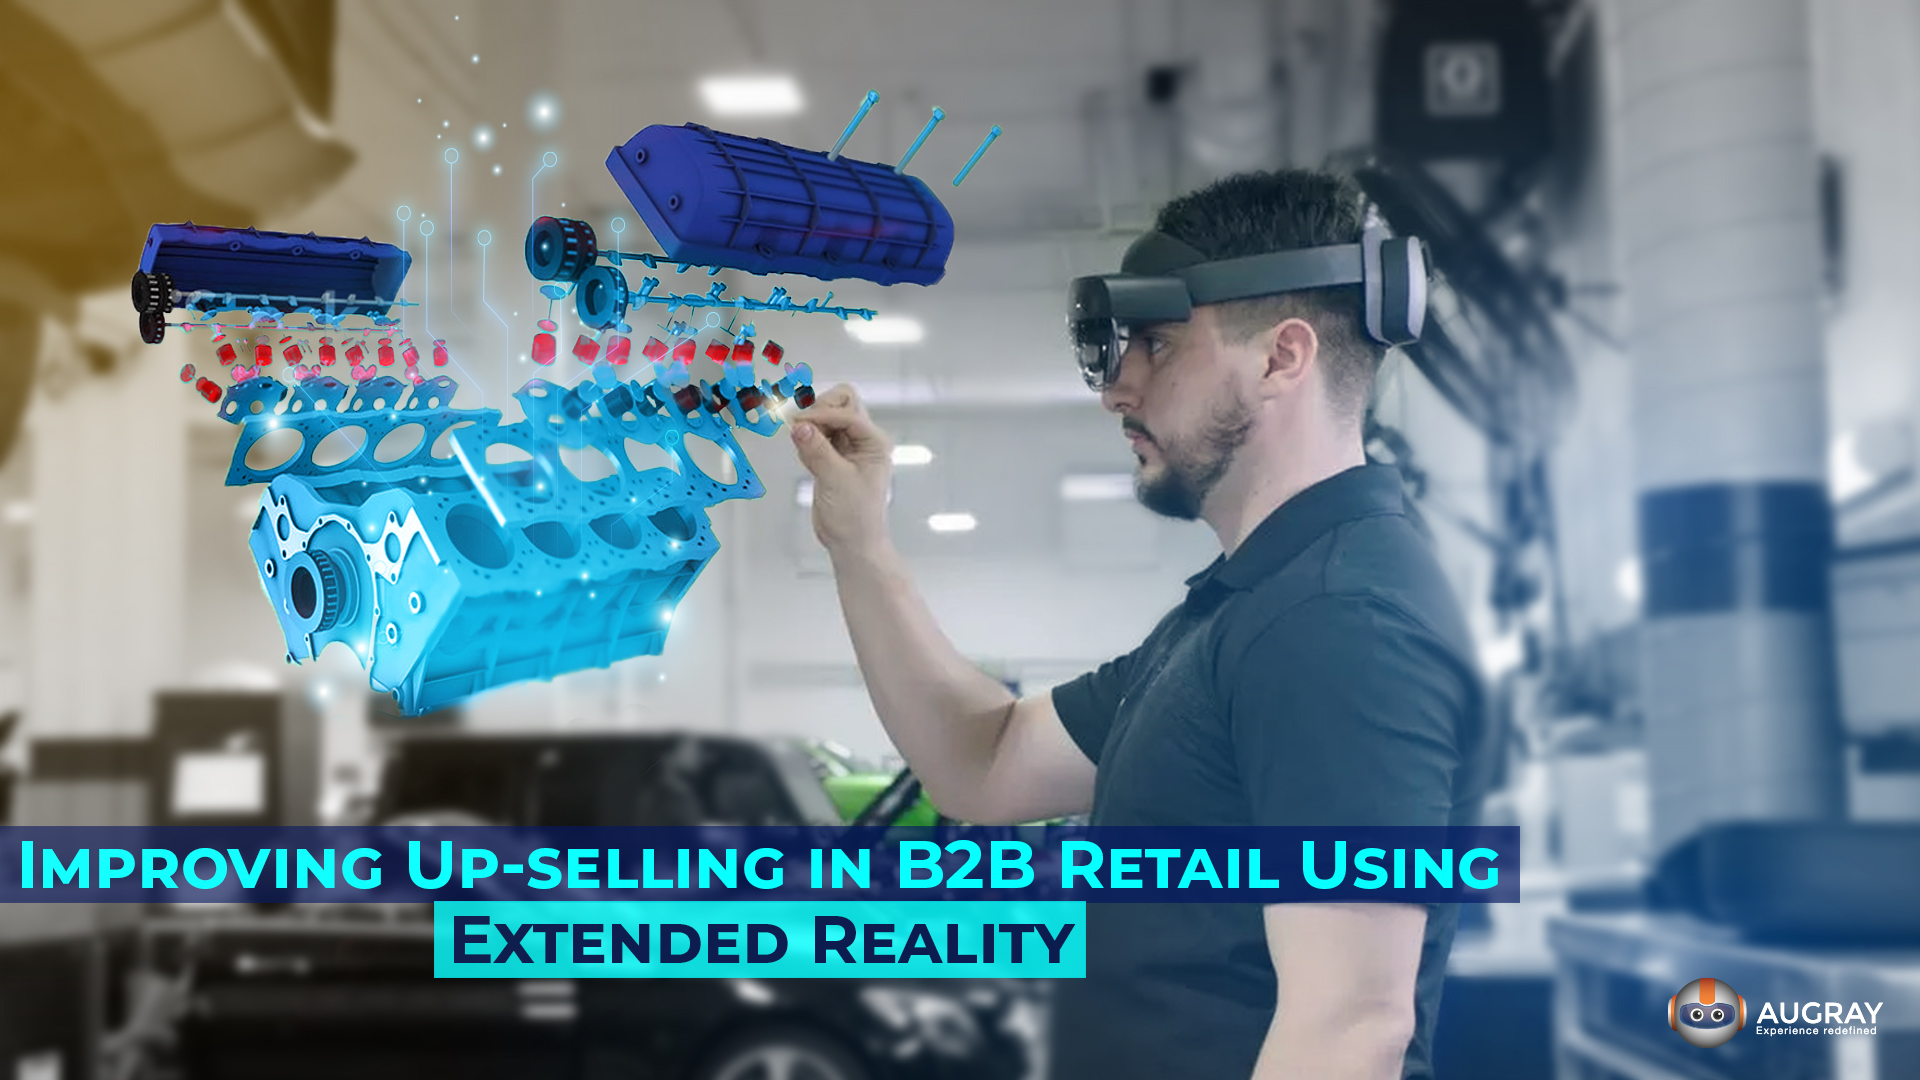 Improving Up-selling in B2B Retail Using Extended Reality